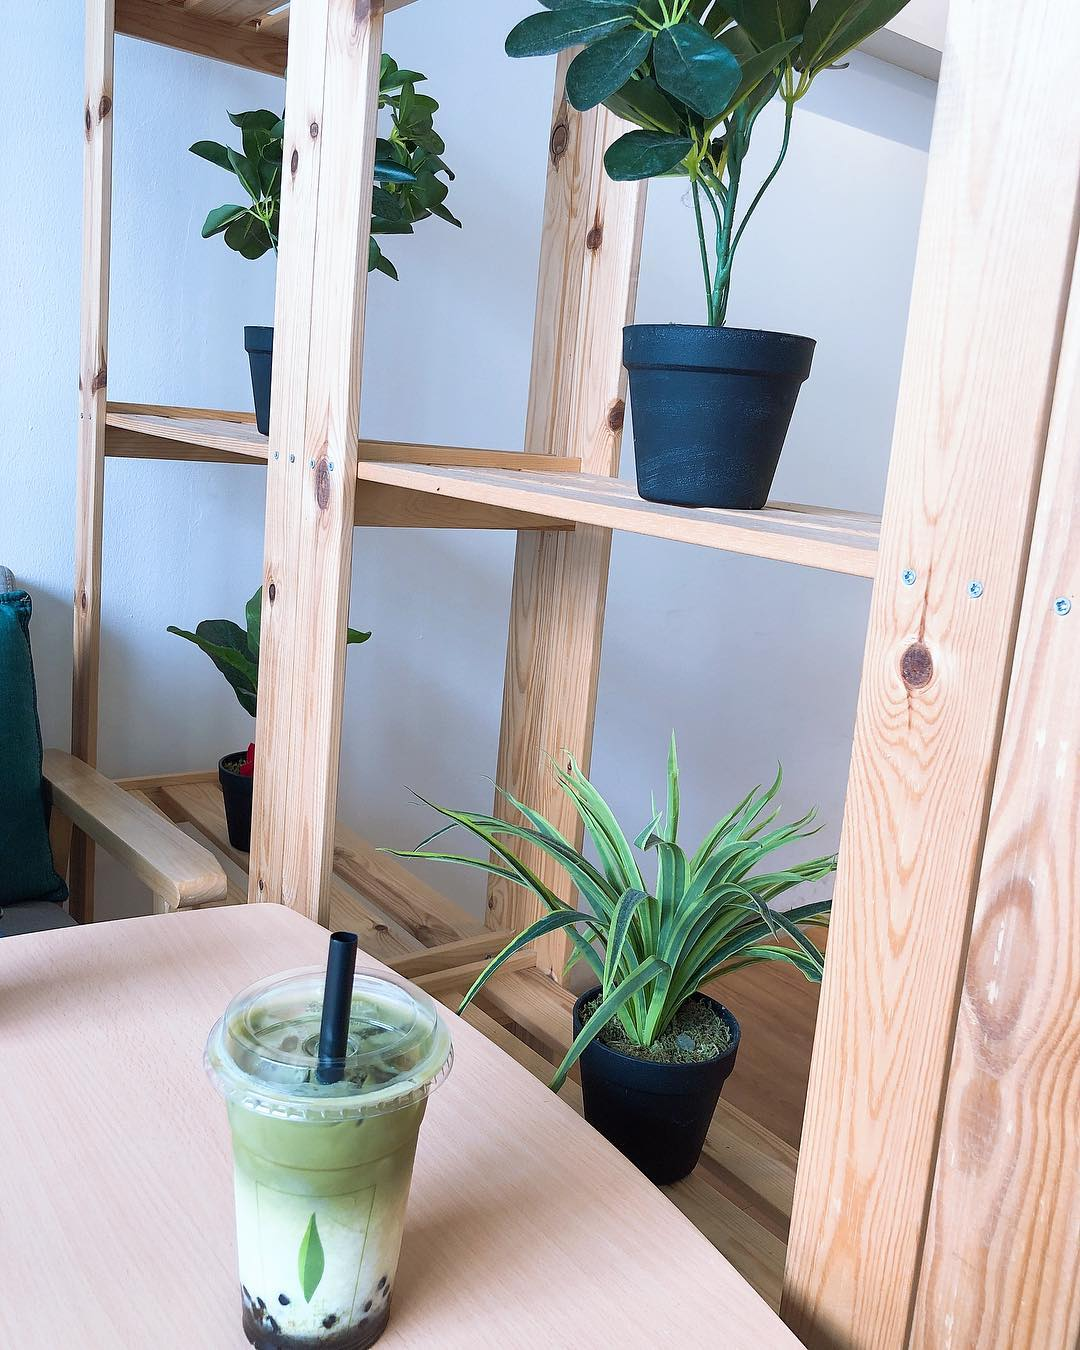 bubble tea cafe in jb - chatto tea mount austin